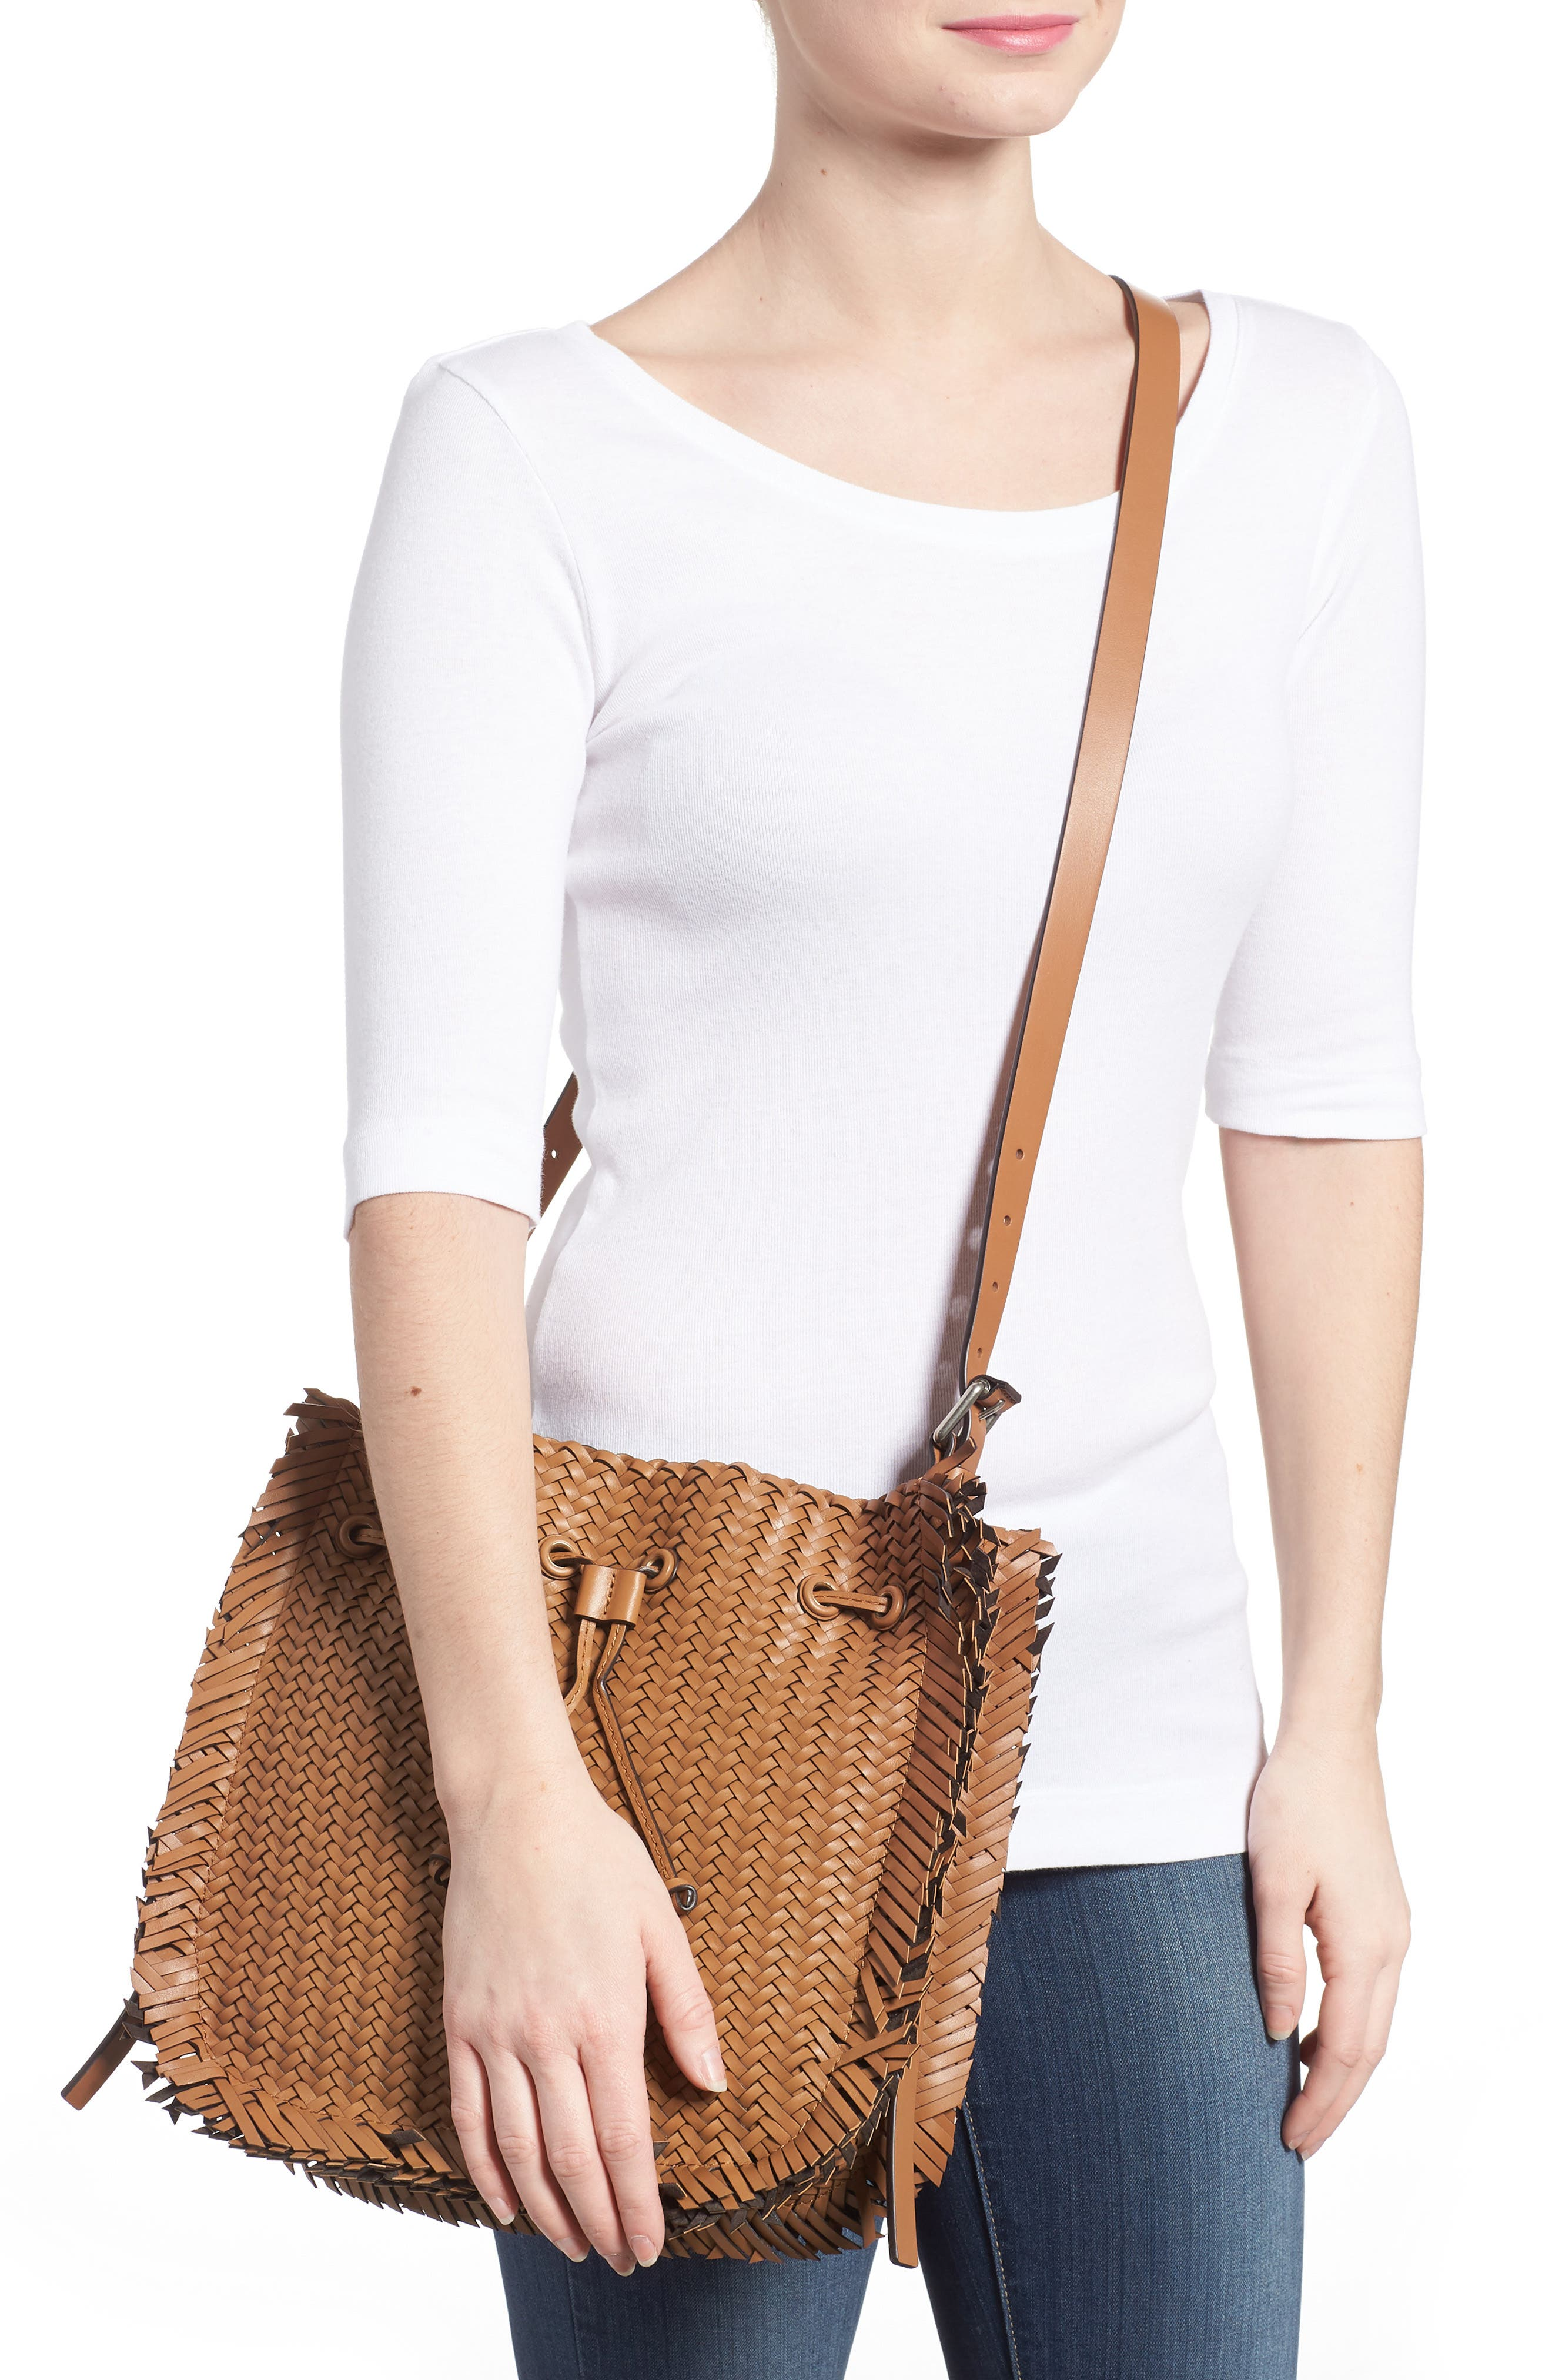 Maldives Woven Frayed Leather Crossbody Bag,                             Alternate thumbnail 2, color,                             Acorn